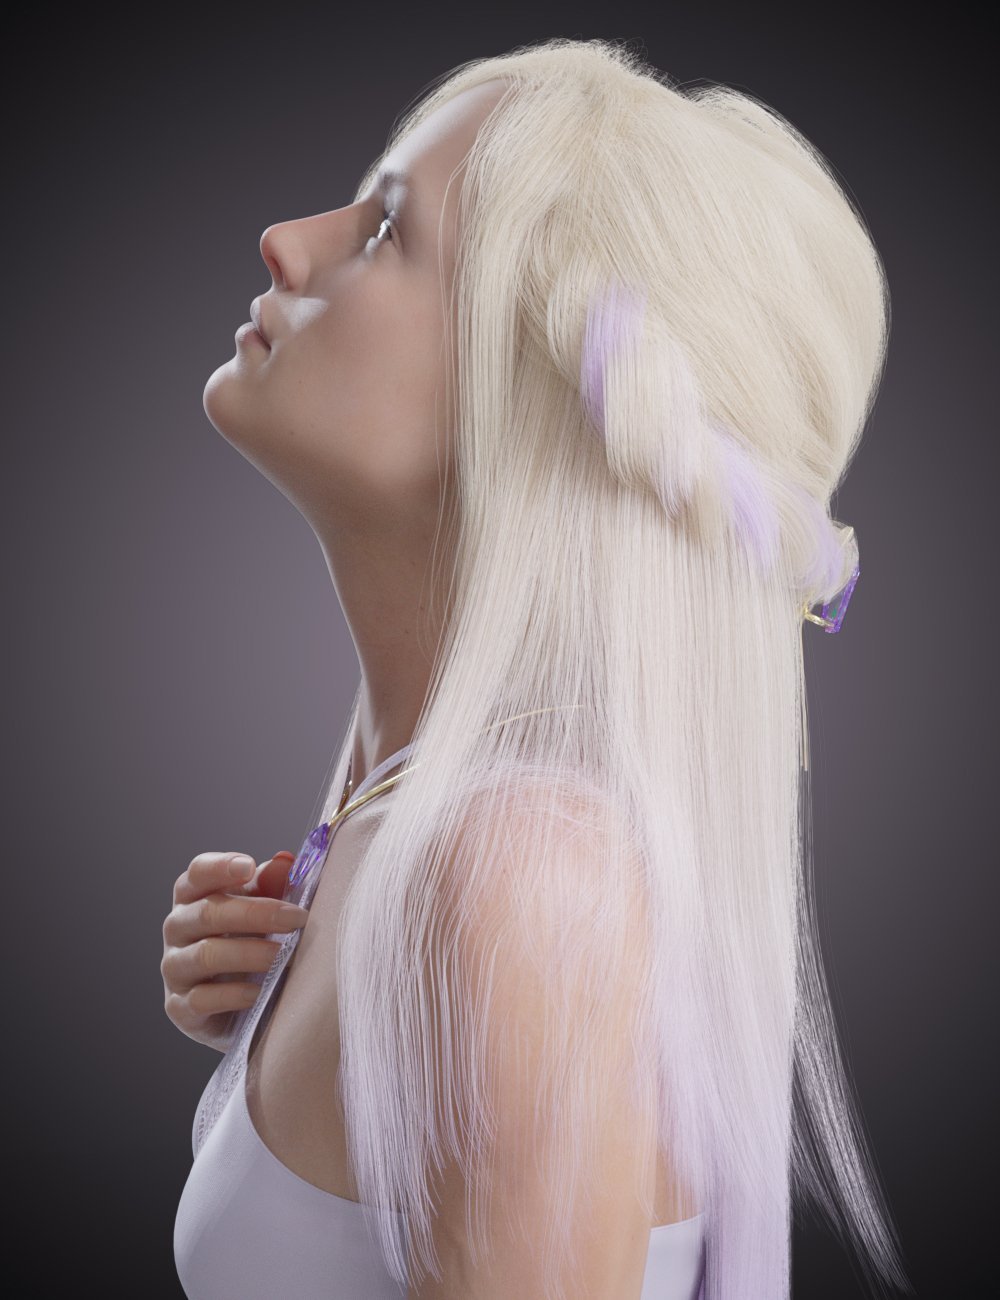 dforce Arcane Enchantress Hair for Genesis 3 and 8 Female by: chevybabe25, 3D Models by Daz 3D